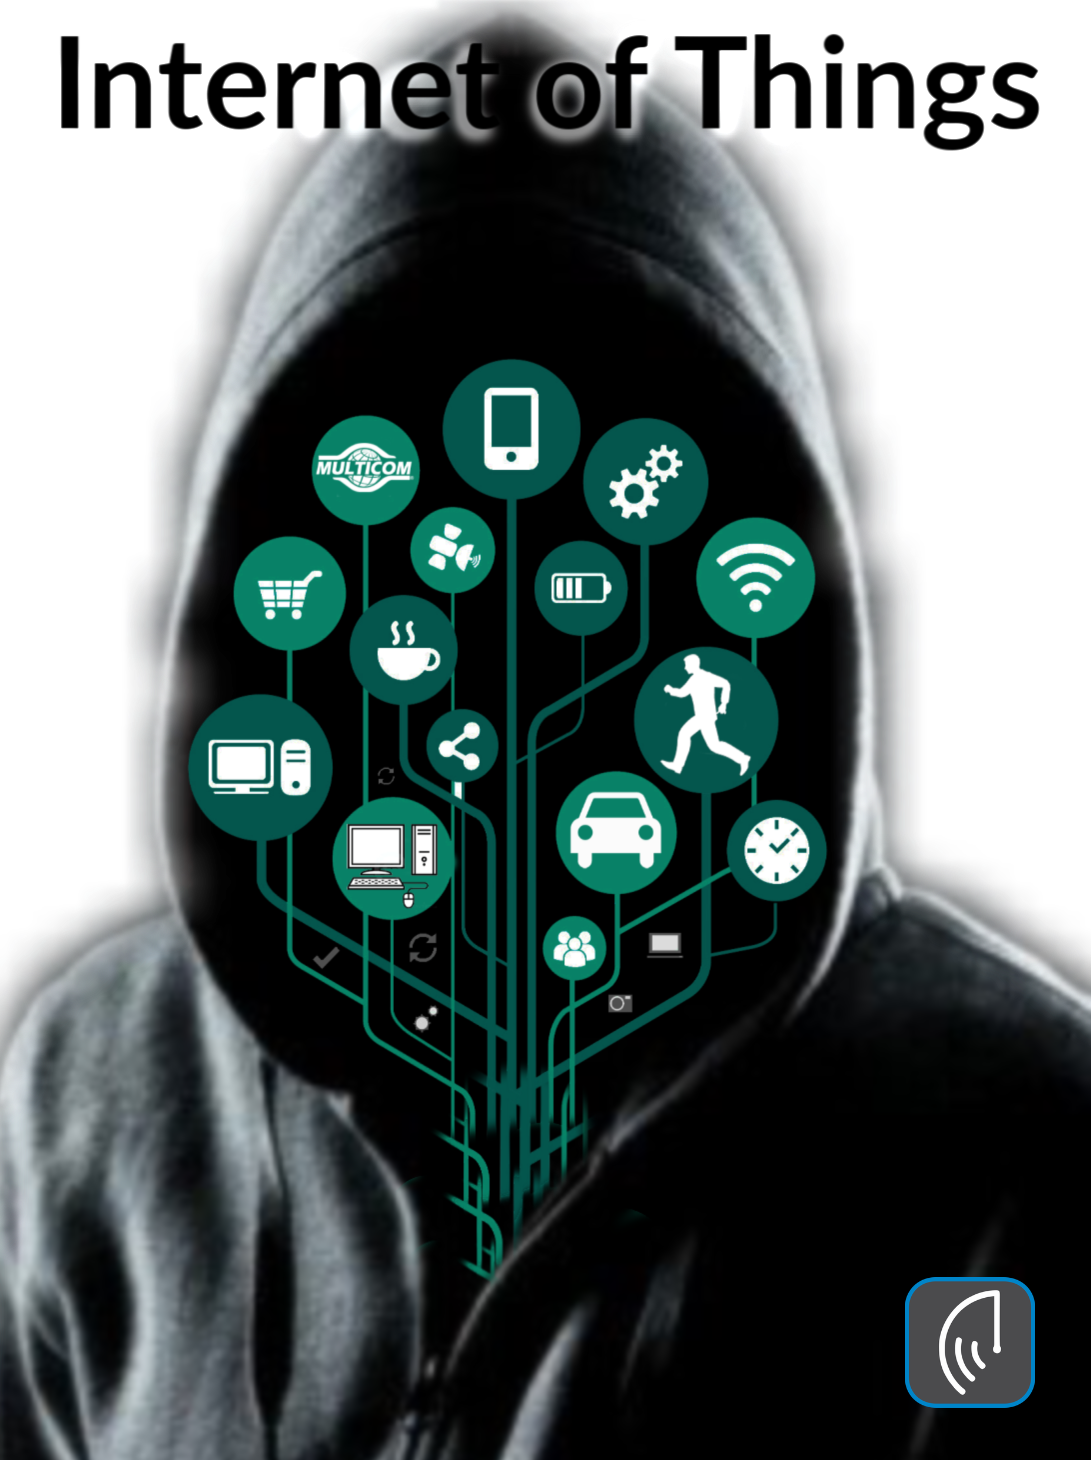 PERSONAL PRIVACY AND THE INTERNET OF THINGS (IOT)